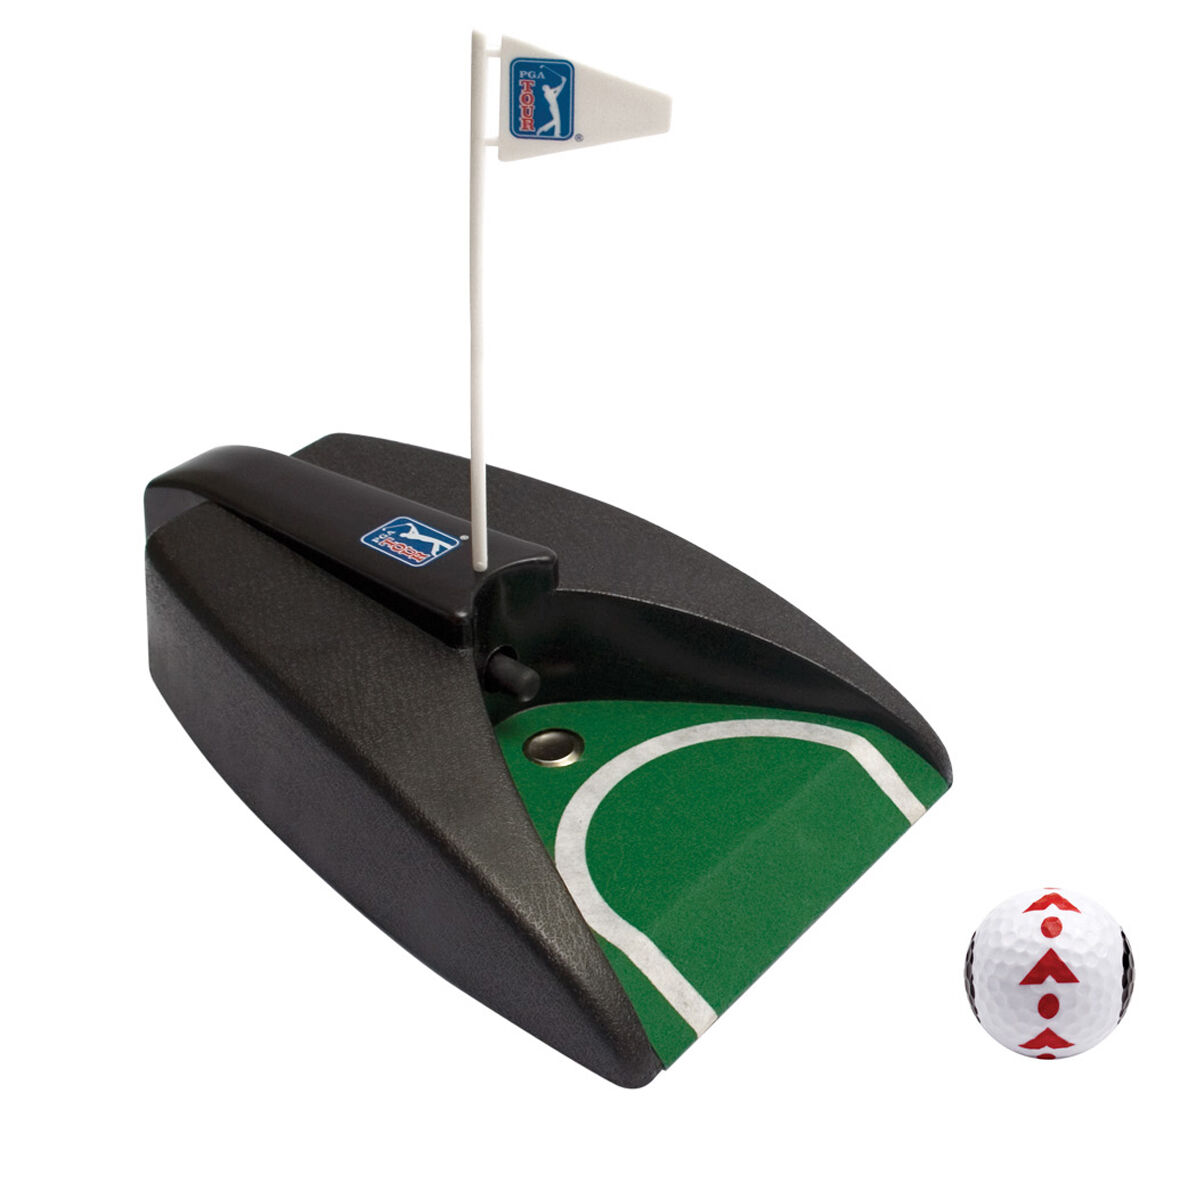 PGA Tour Putt Auto Returner with Guideball, Male, Pga, One size | American Golf